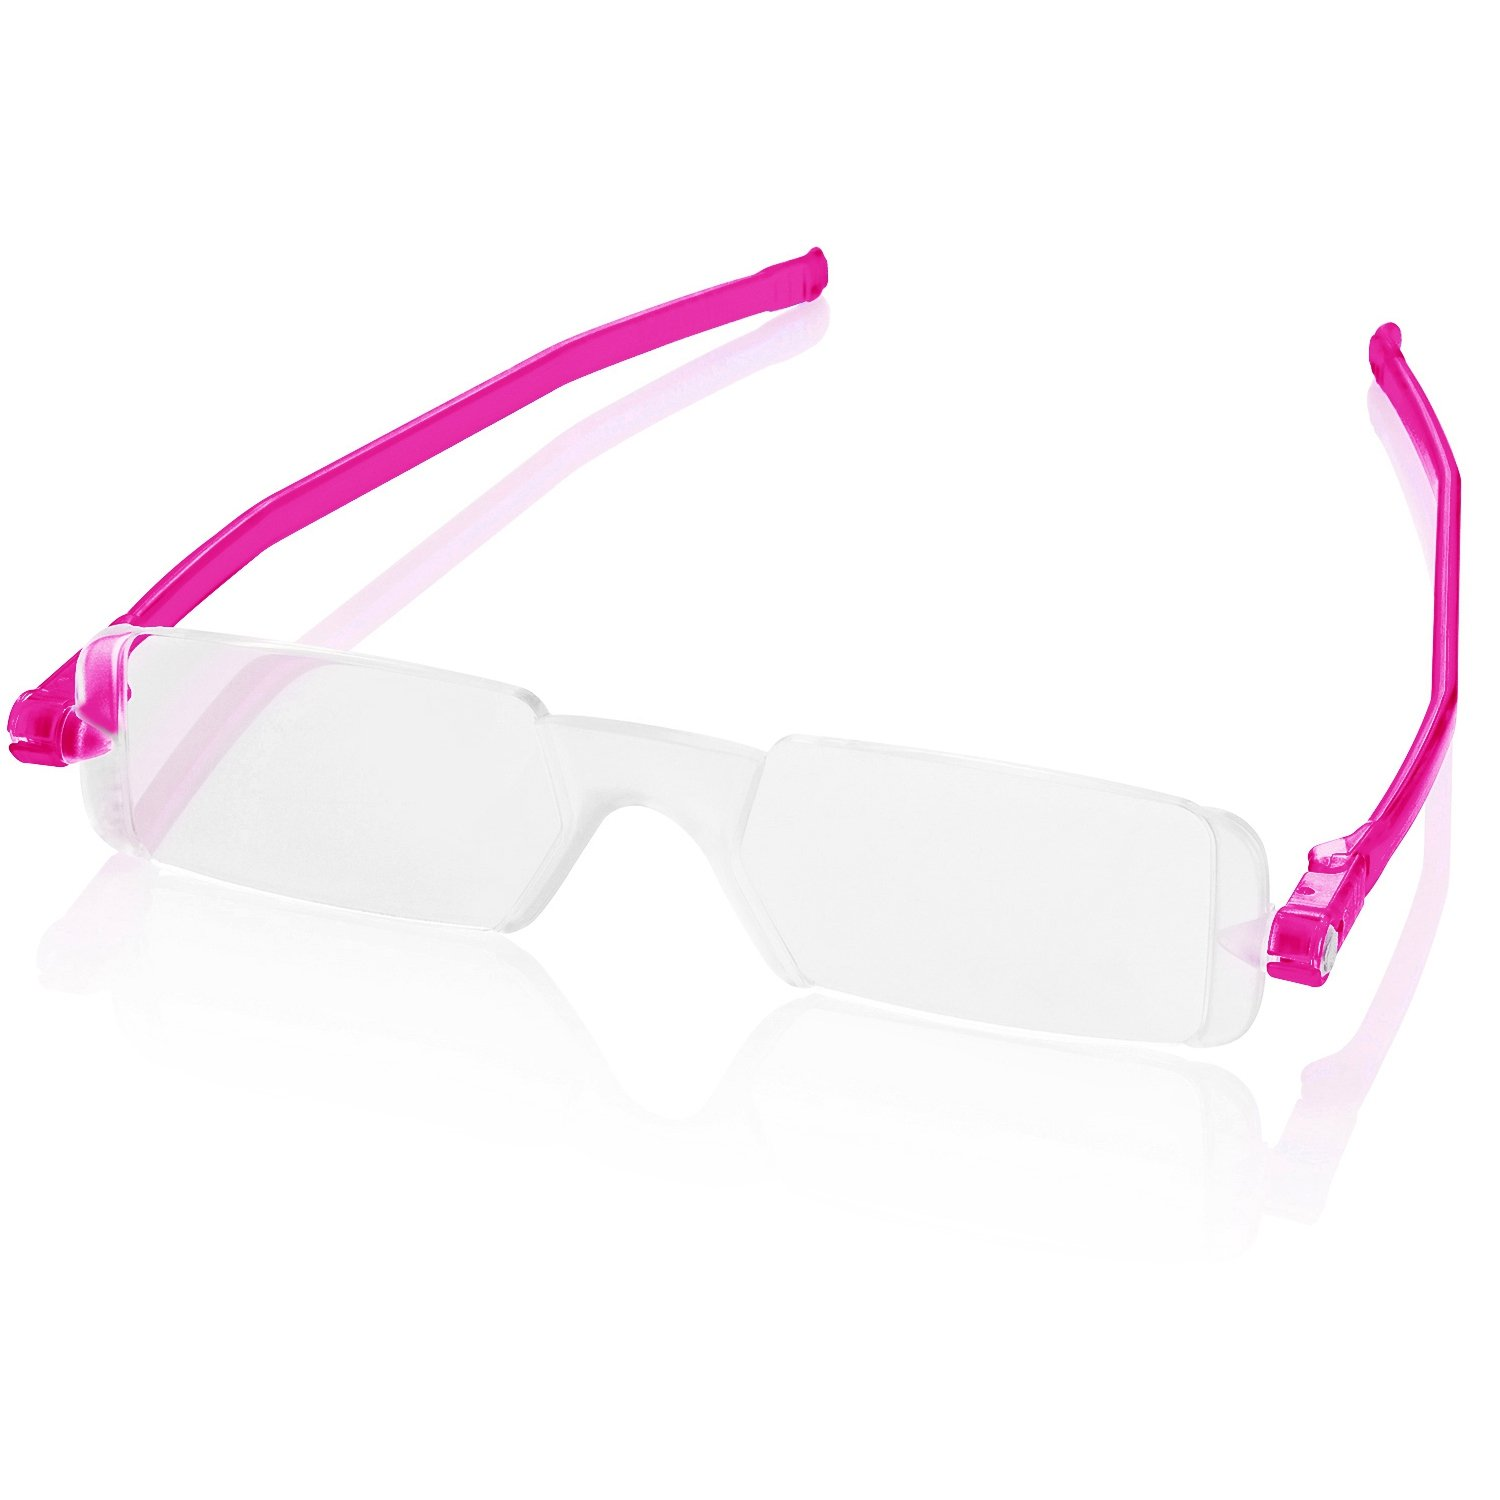 Reading Glasses Nannini Italy Unisex Ultra Thin Reader - Fuchsia 3.0